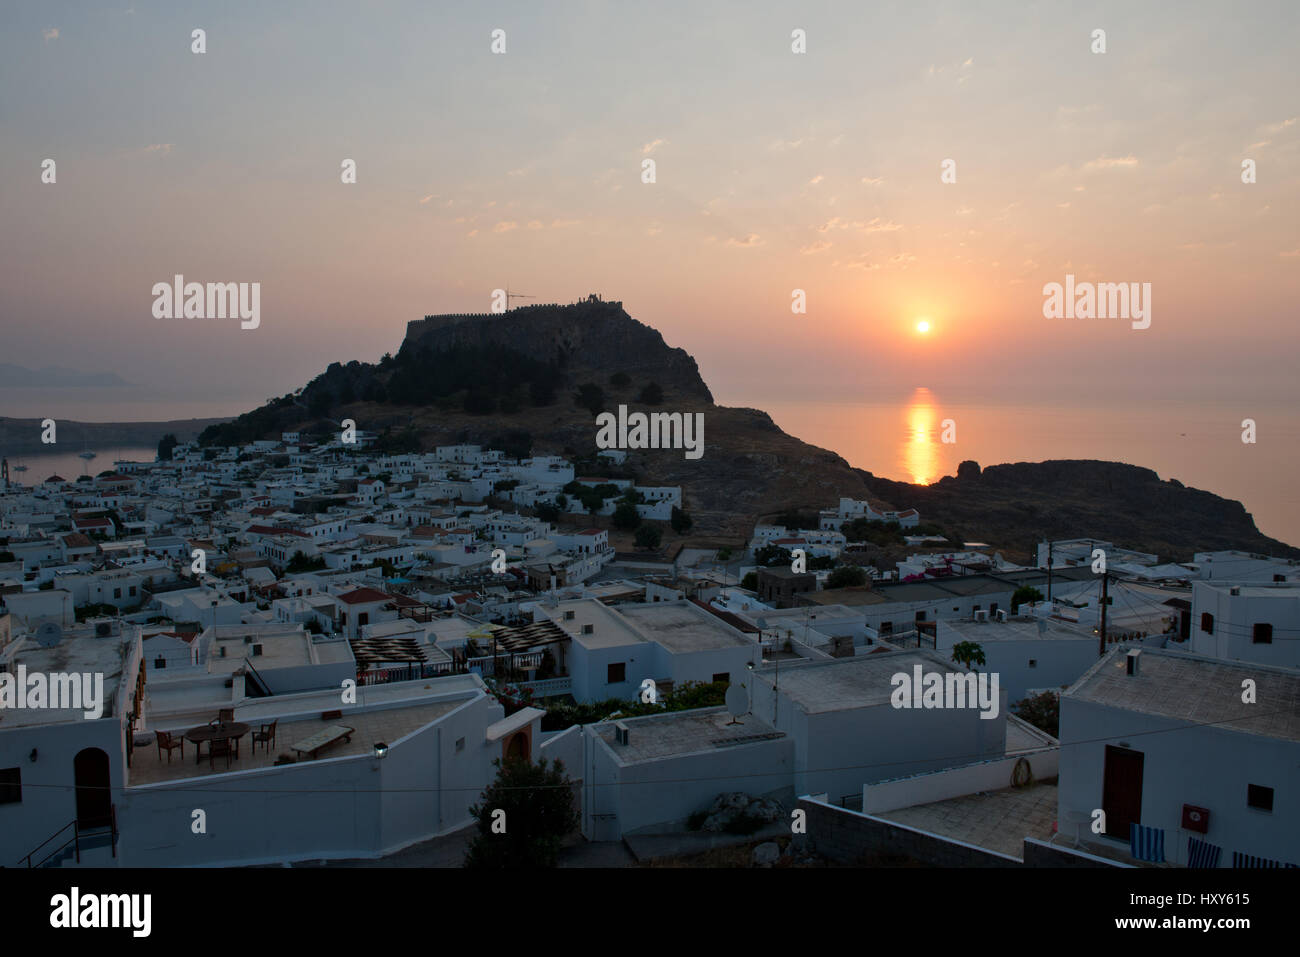 sunrise with the village of Lindos and the acropolis in the foreground, Lindos, Rhodos, Greece - Stock Image